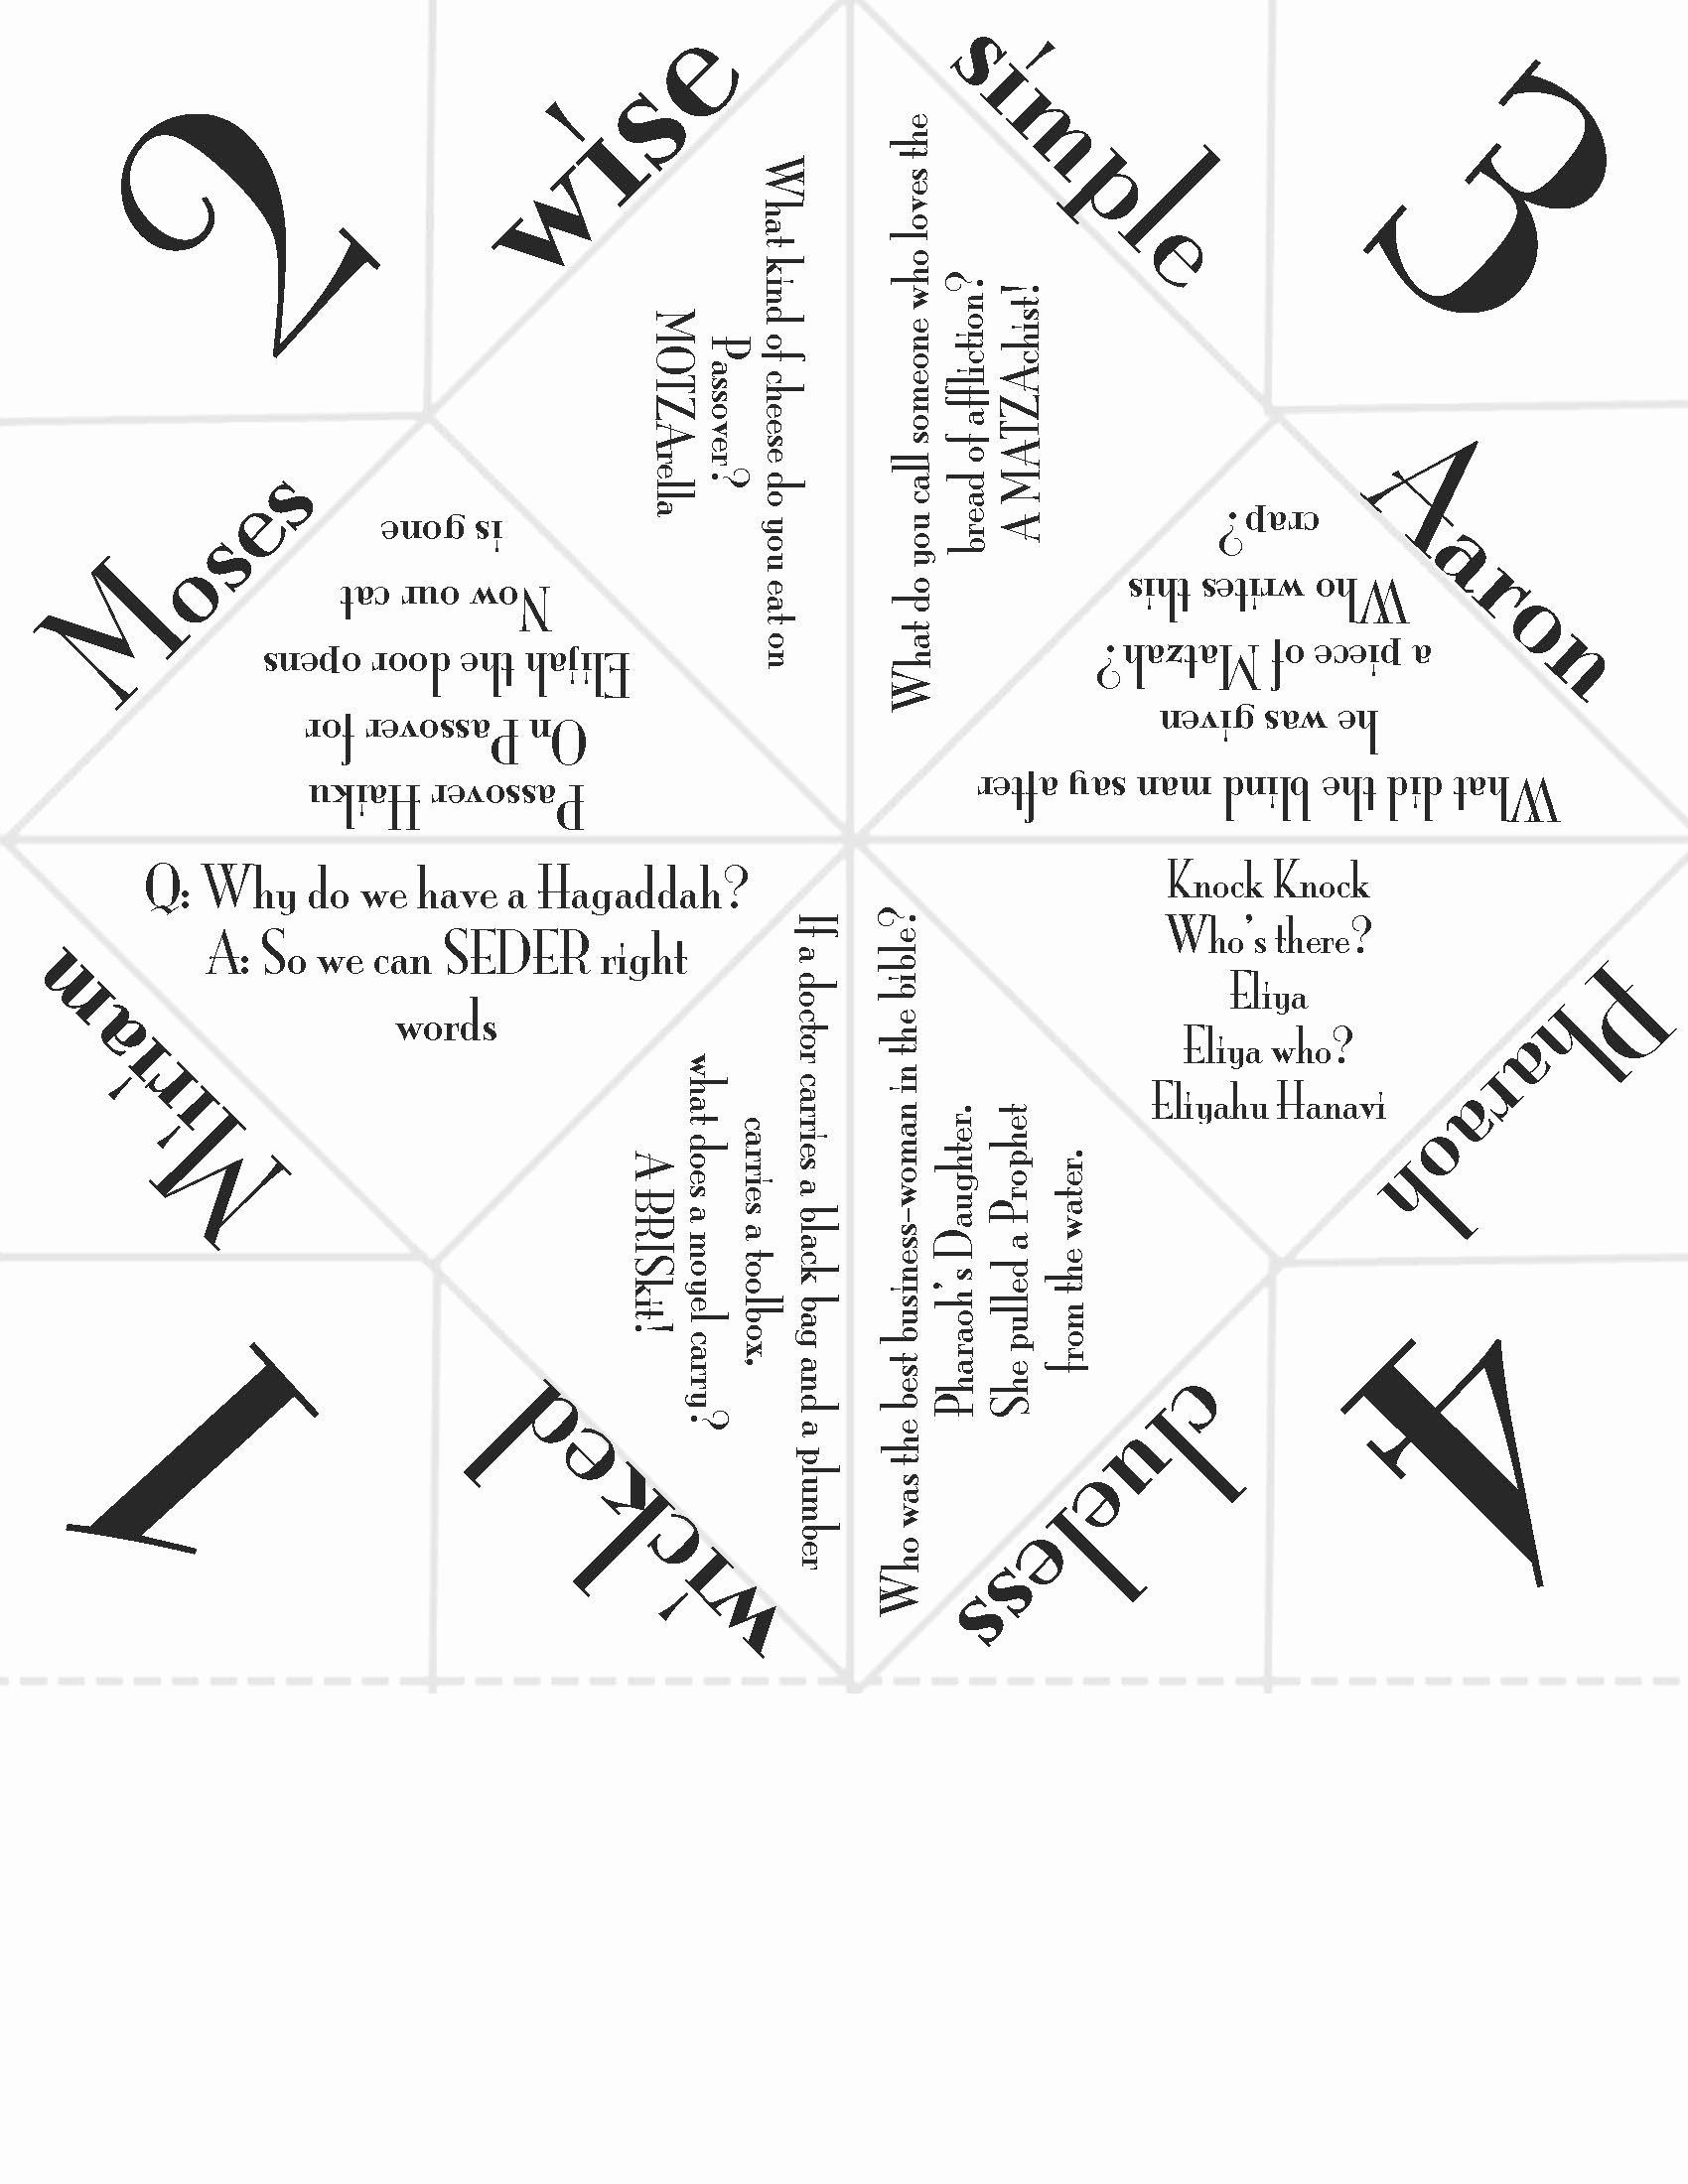 Passover Coloring Pages Free Printable Beautiful My Version Of The Pesach Cootie Catcher Passover Kids Passover Crafts Passover Printables [ 2200 x 1700 Pixel ]